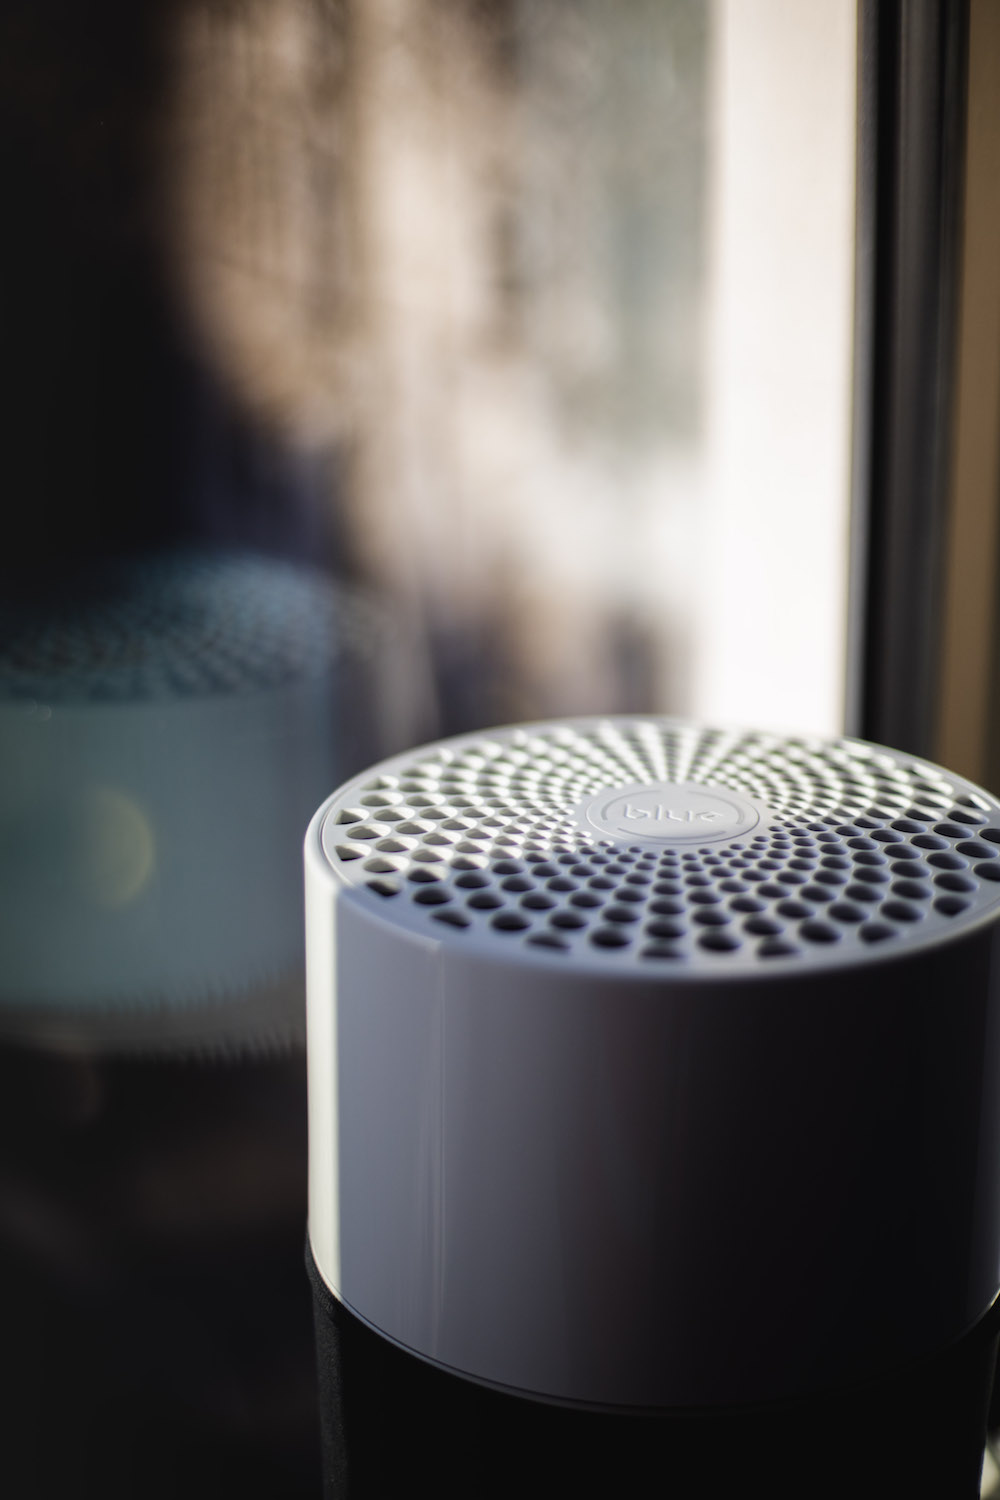 A close up of the hygienic air purifier